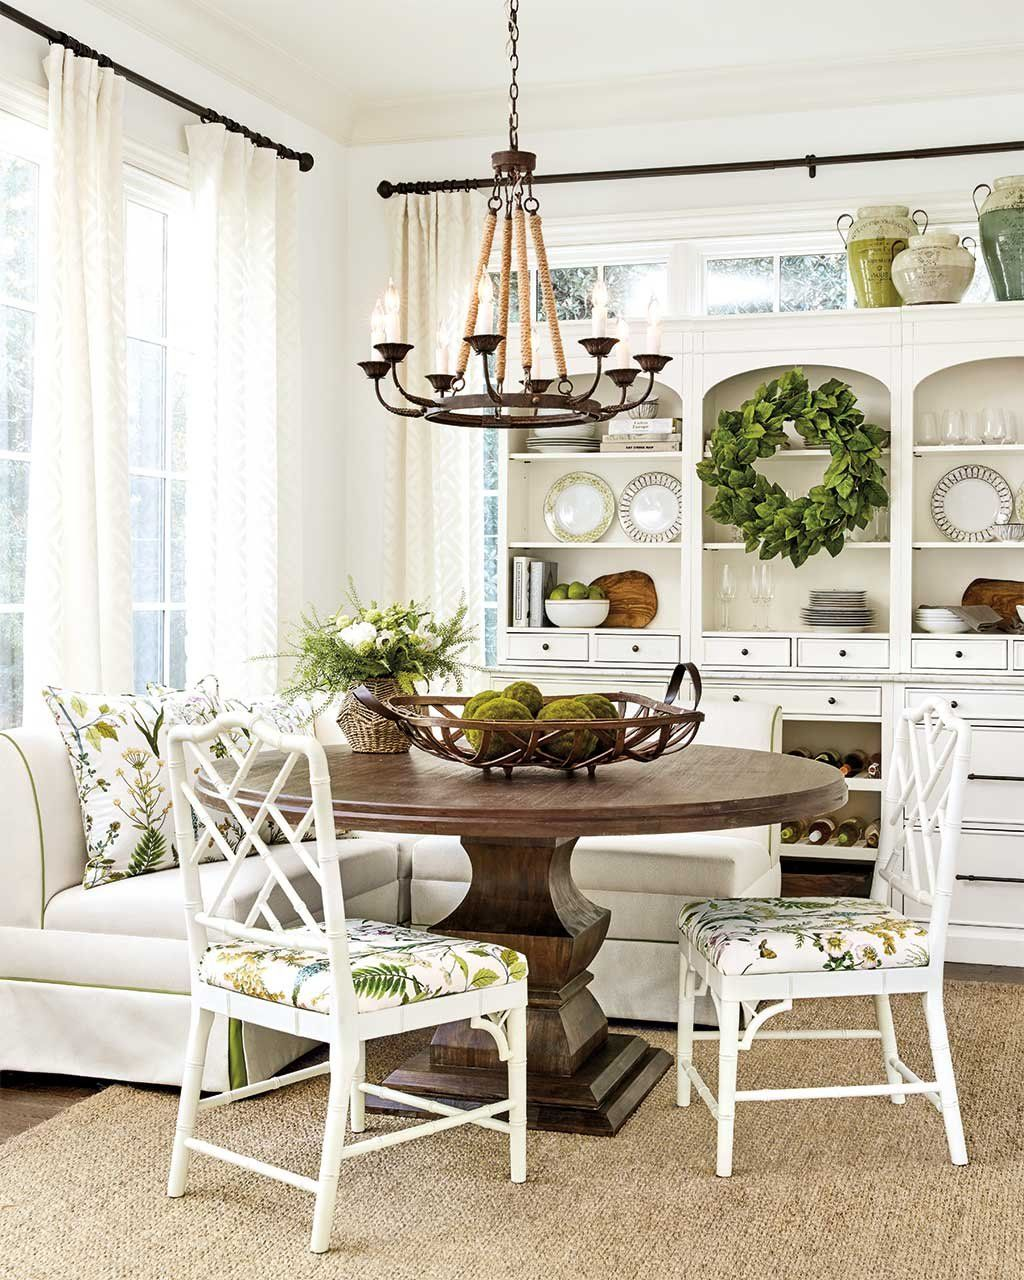 Pin By Whitney Moseley On Decor French Country Dining Room French Country Dining Room Table Cottage Chic Dining Room